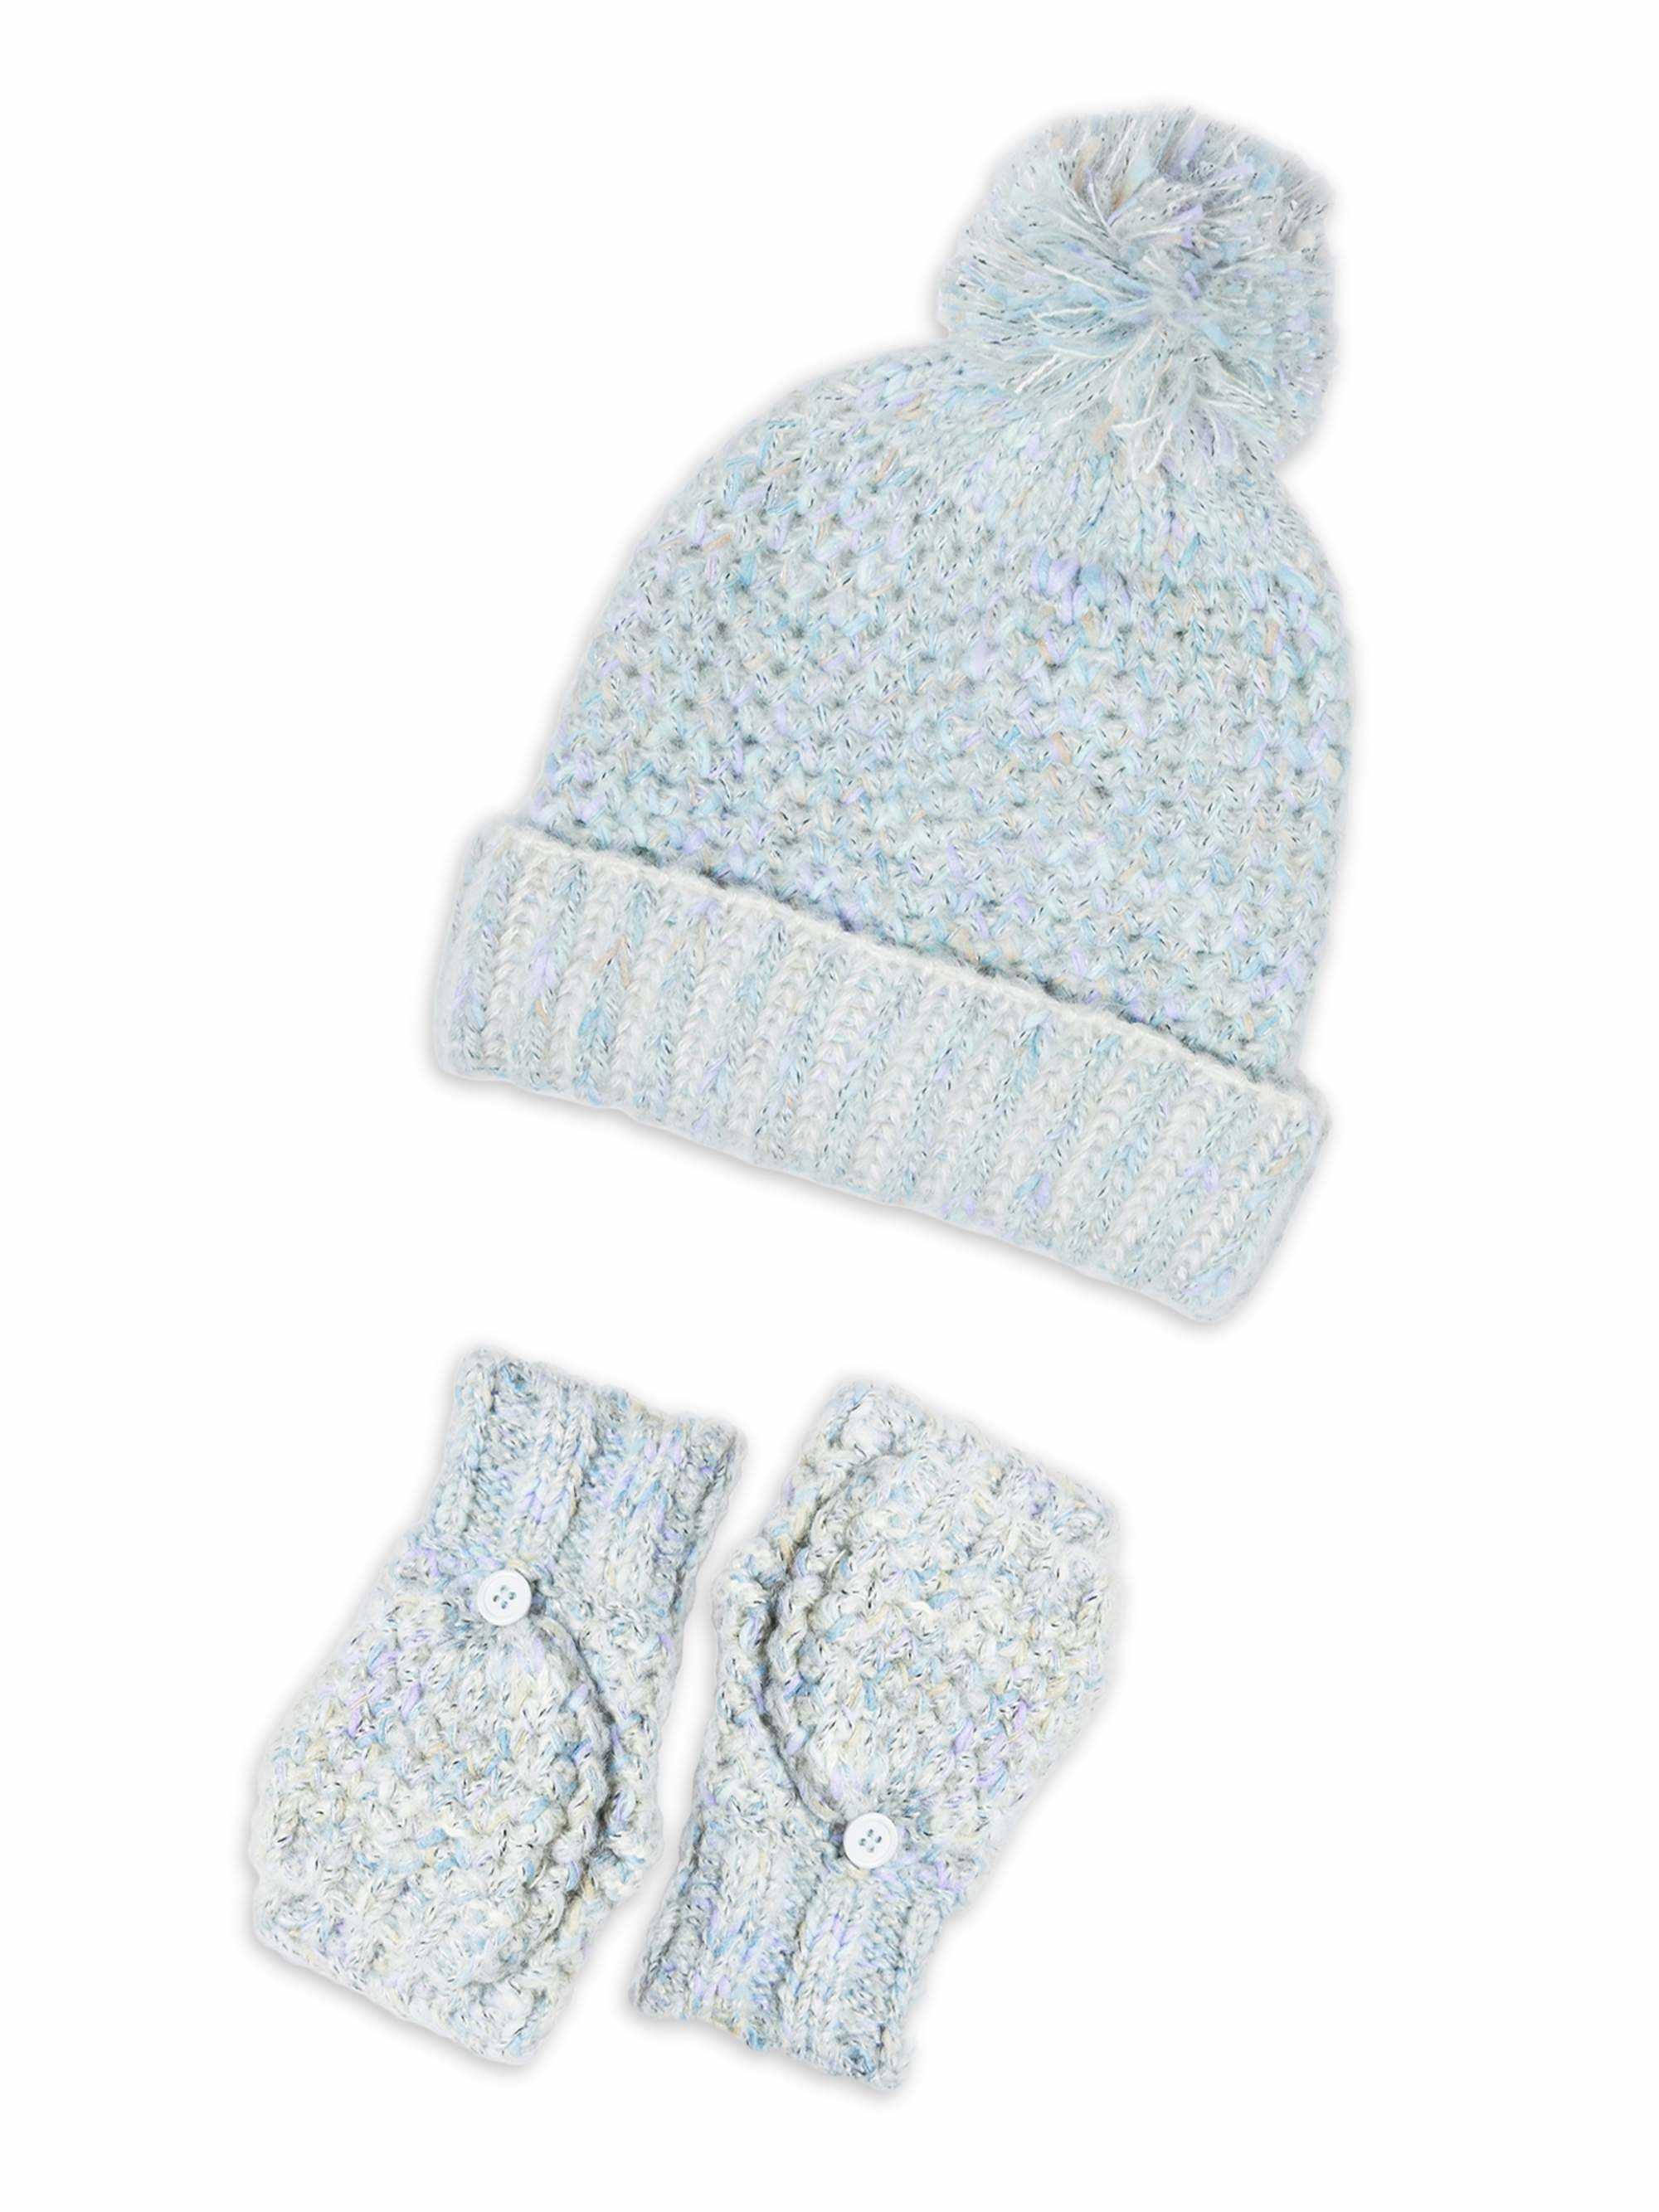 The light blue hat and gloves